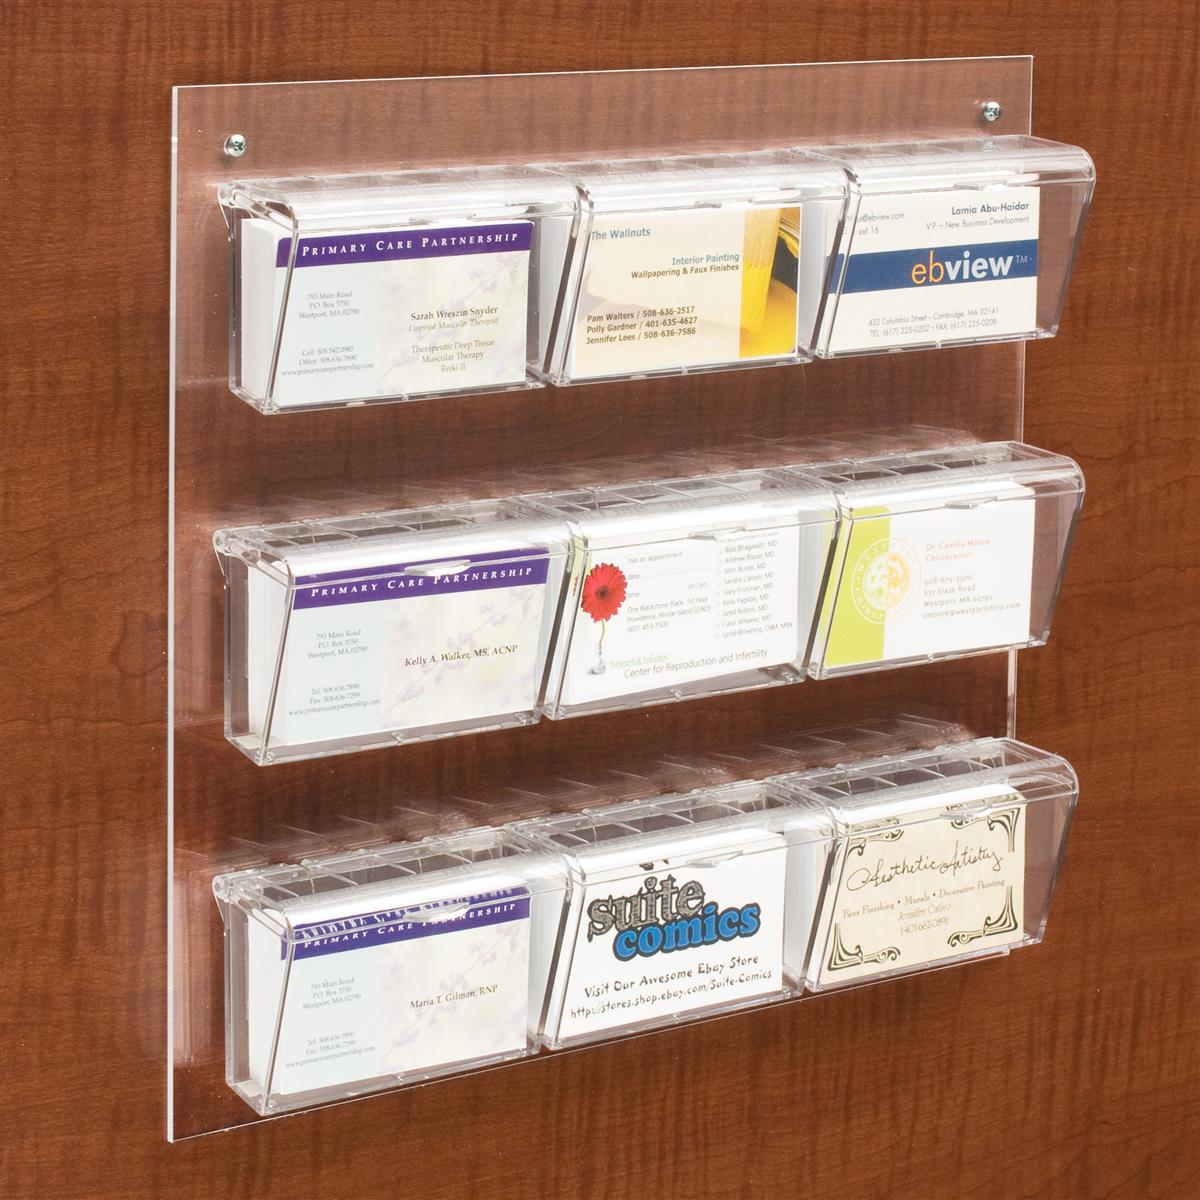 9-Pocket Card Display for Wall | Dispenser for 540 Contacts